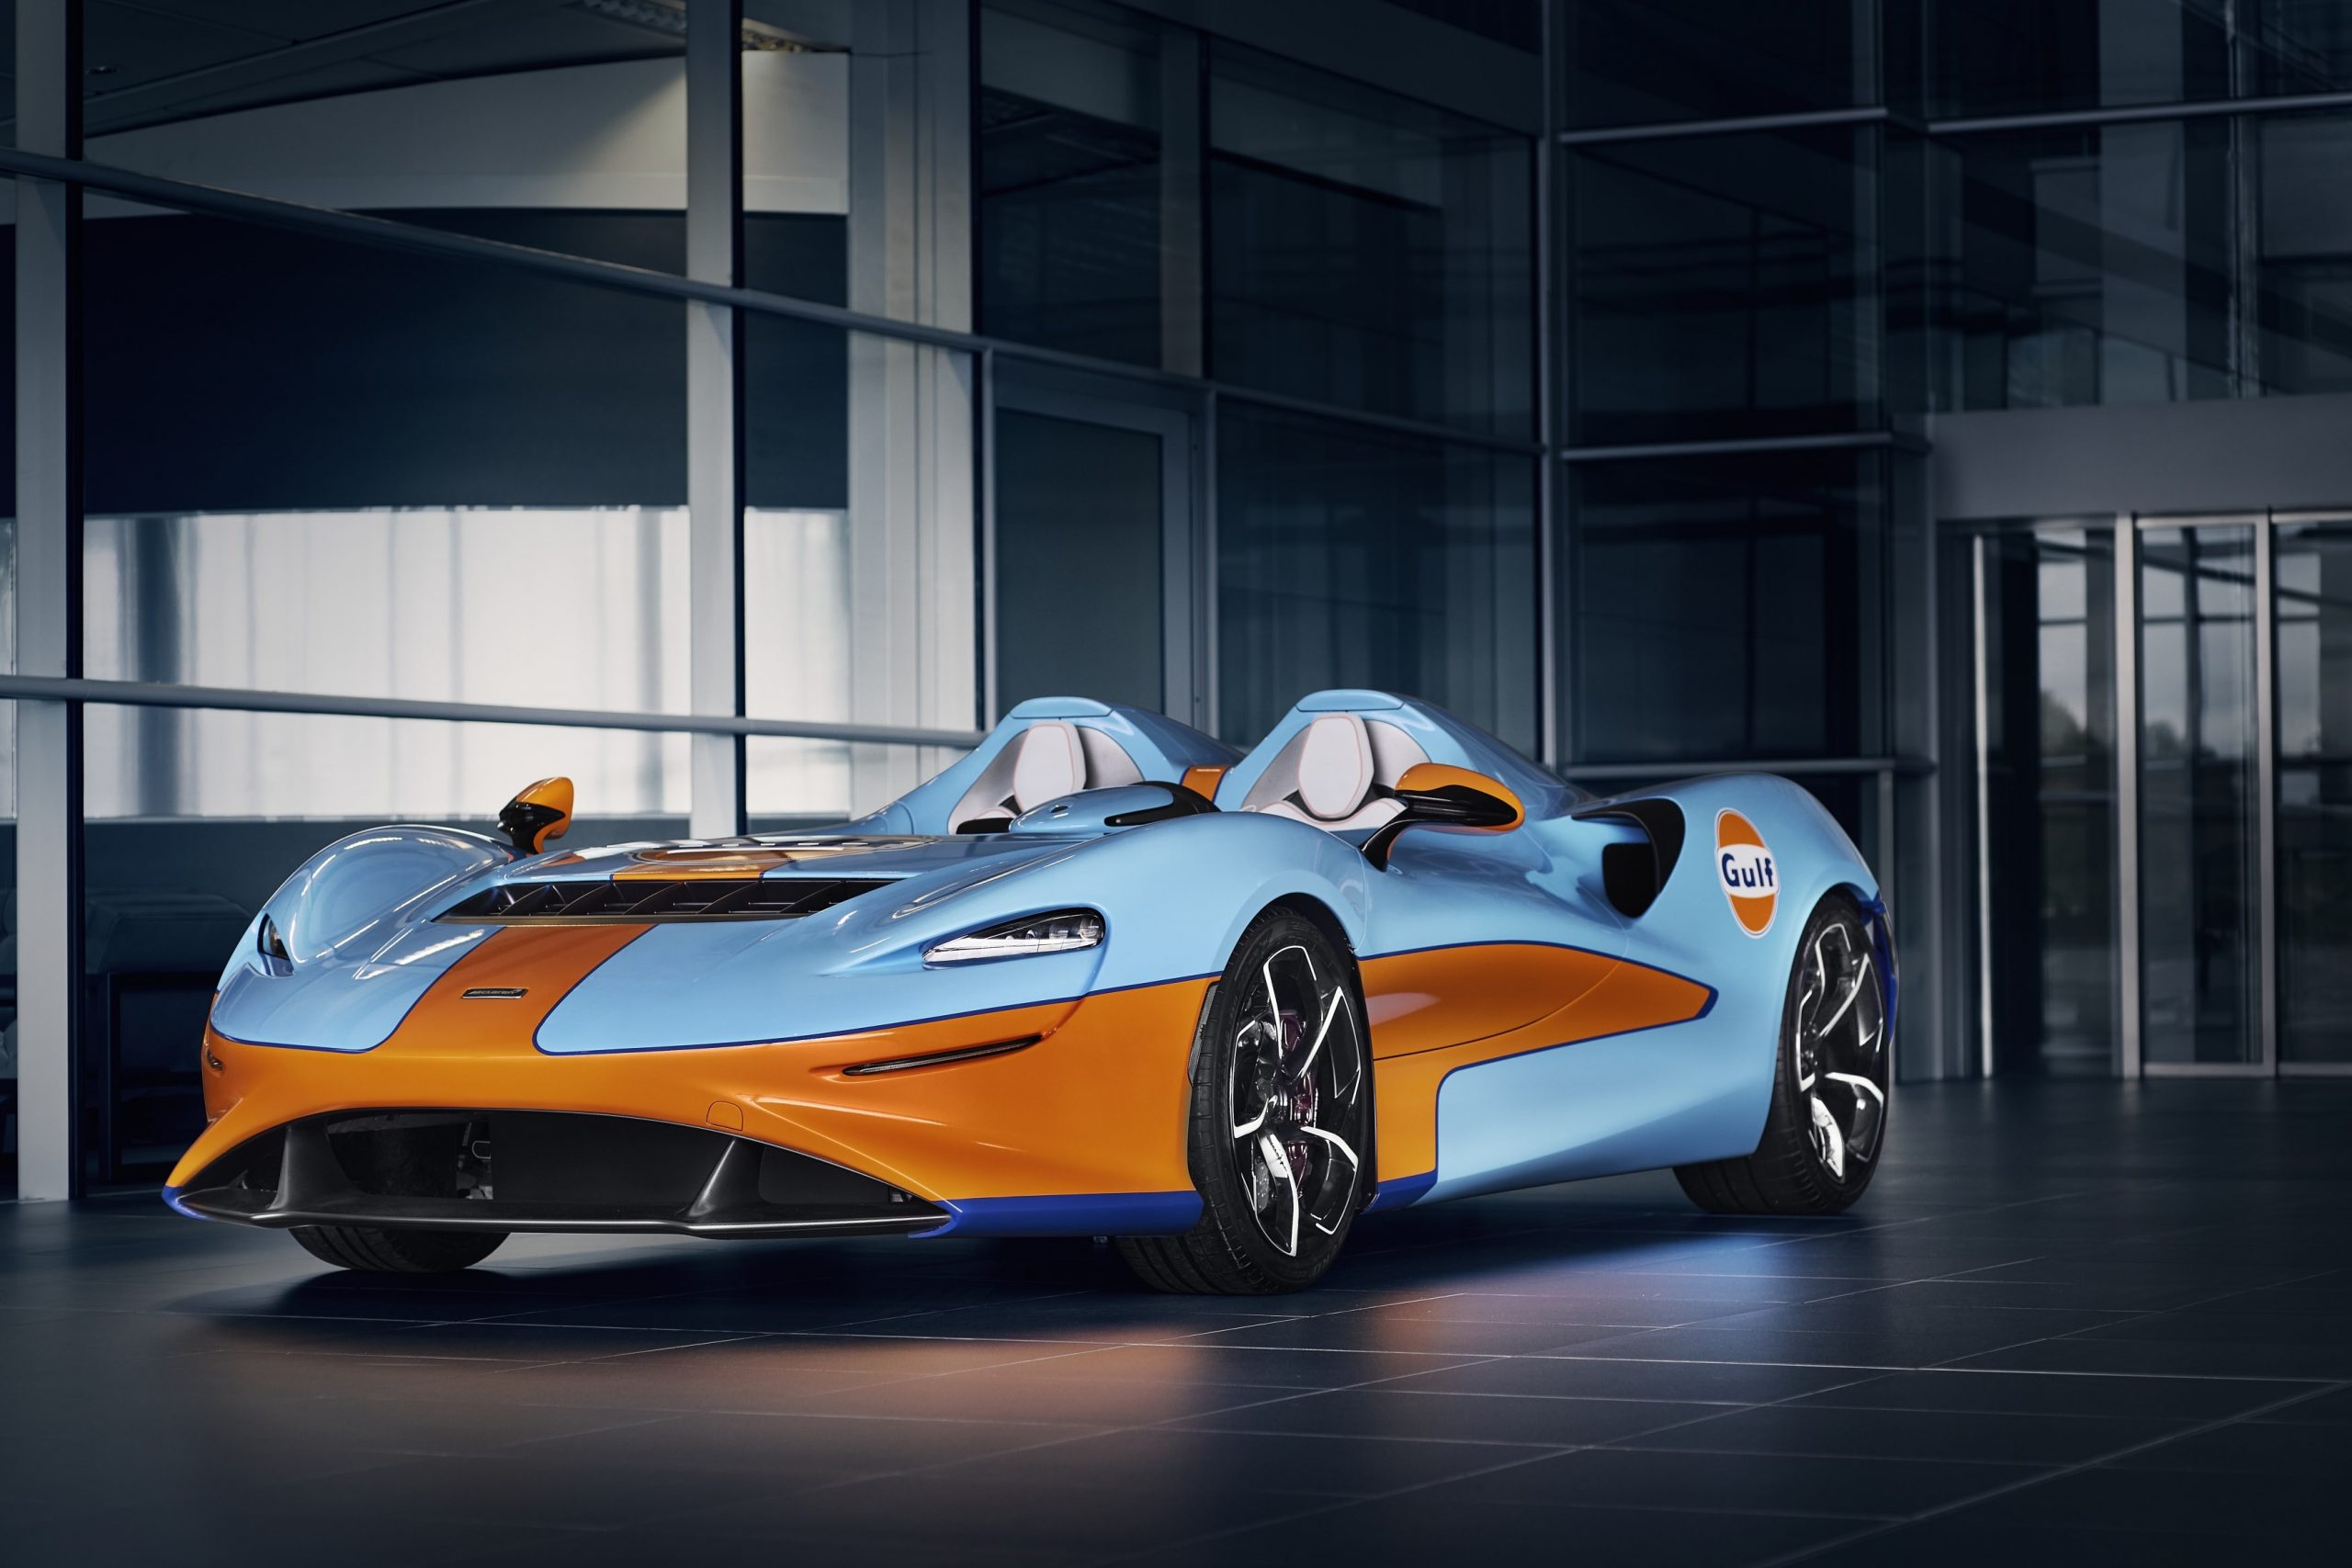 Ice-cool Gulf McLaren Elva debuts at SpeedWeek